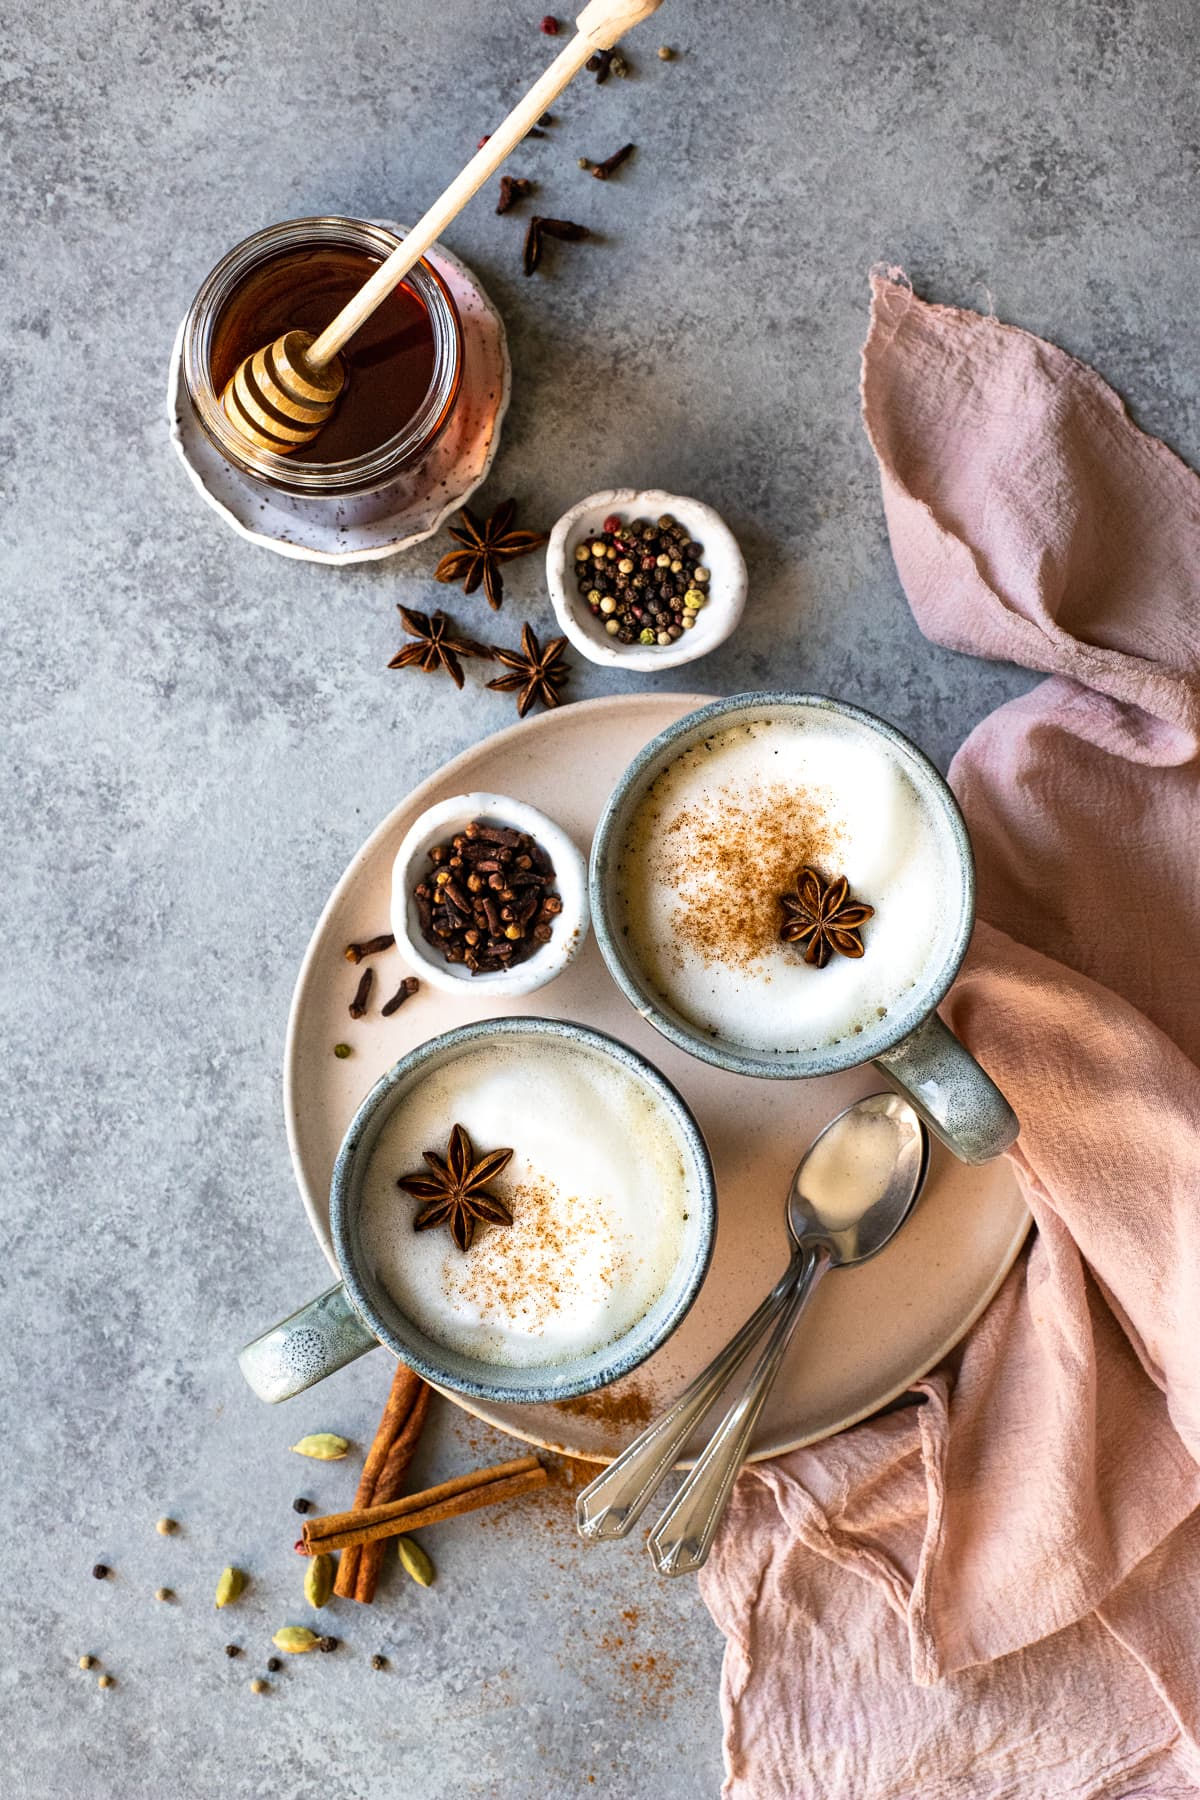 Overhead view of two lattes, surrounded by a jar of honey spices, and a pink linen.